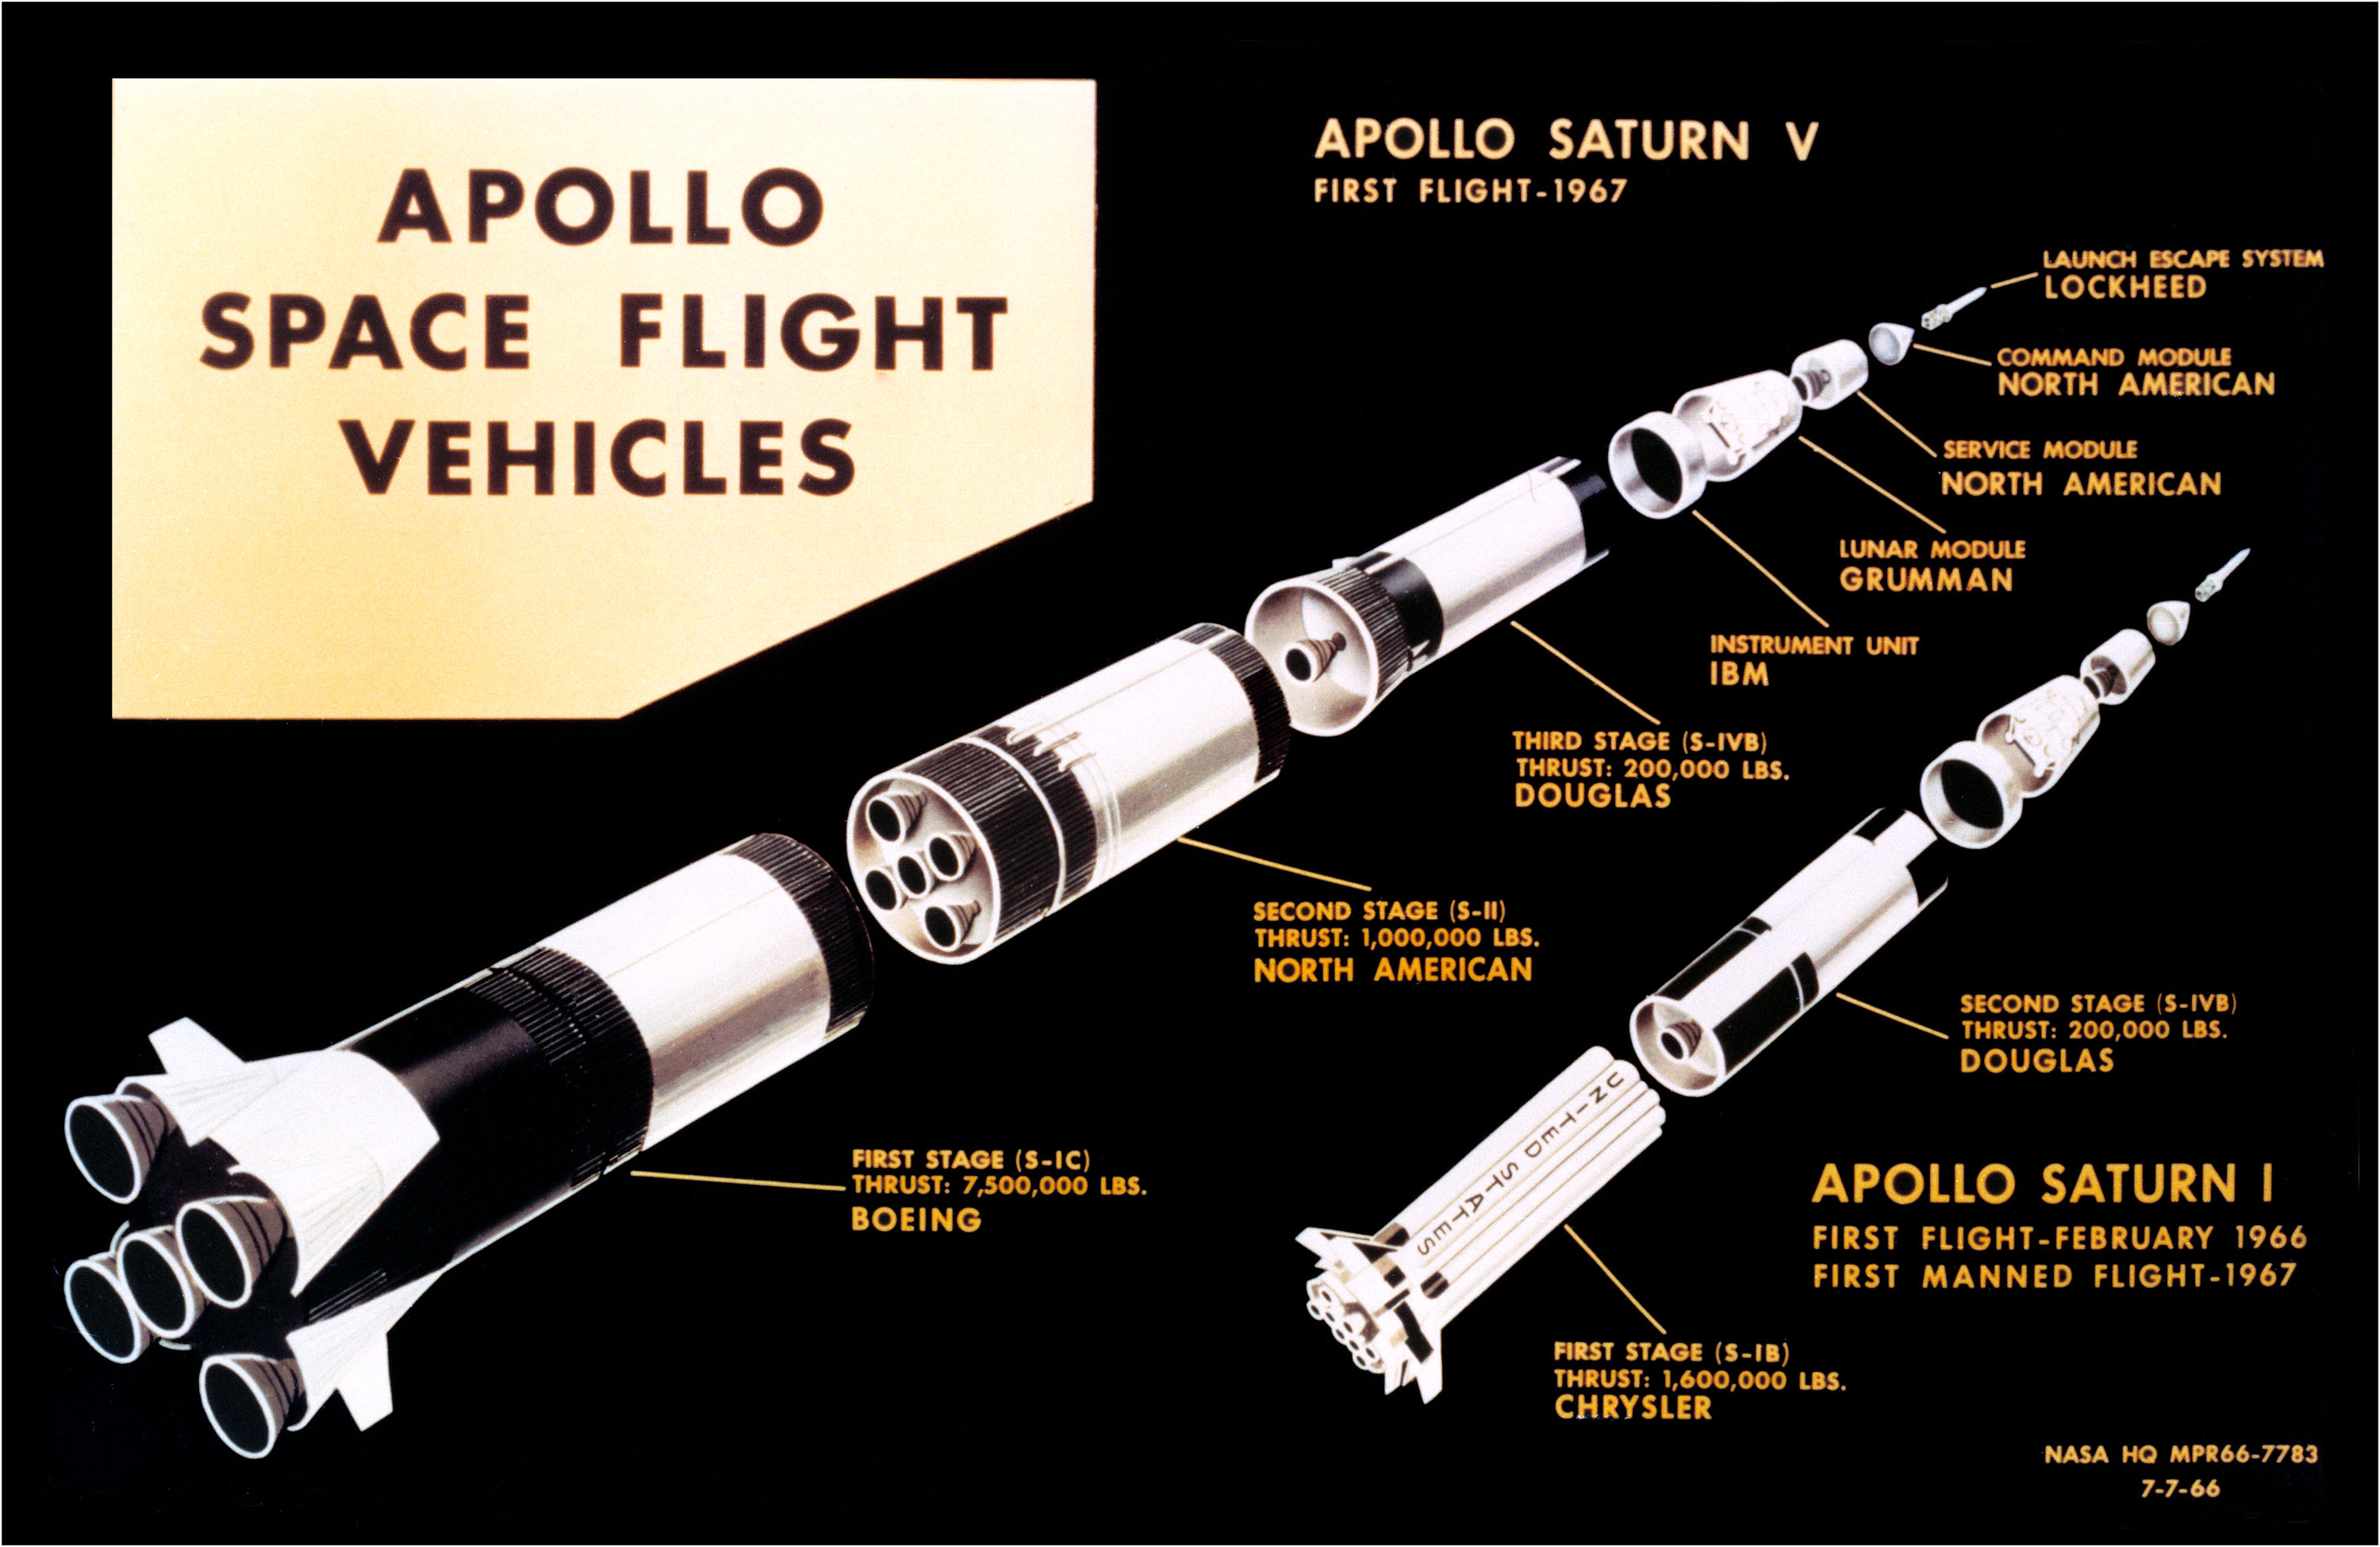 nasa apollo program pictures - photo #31